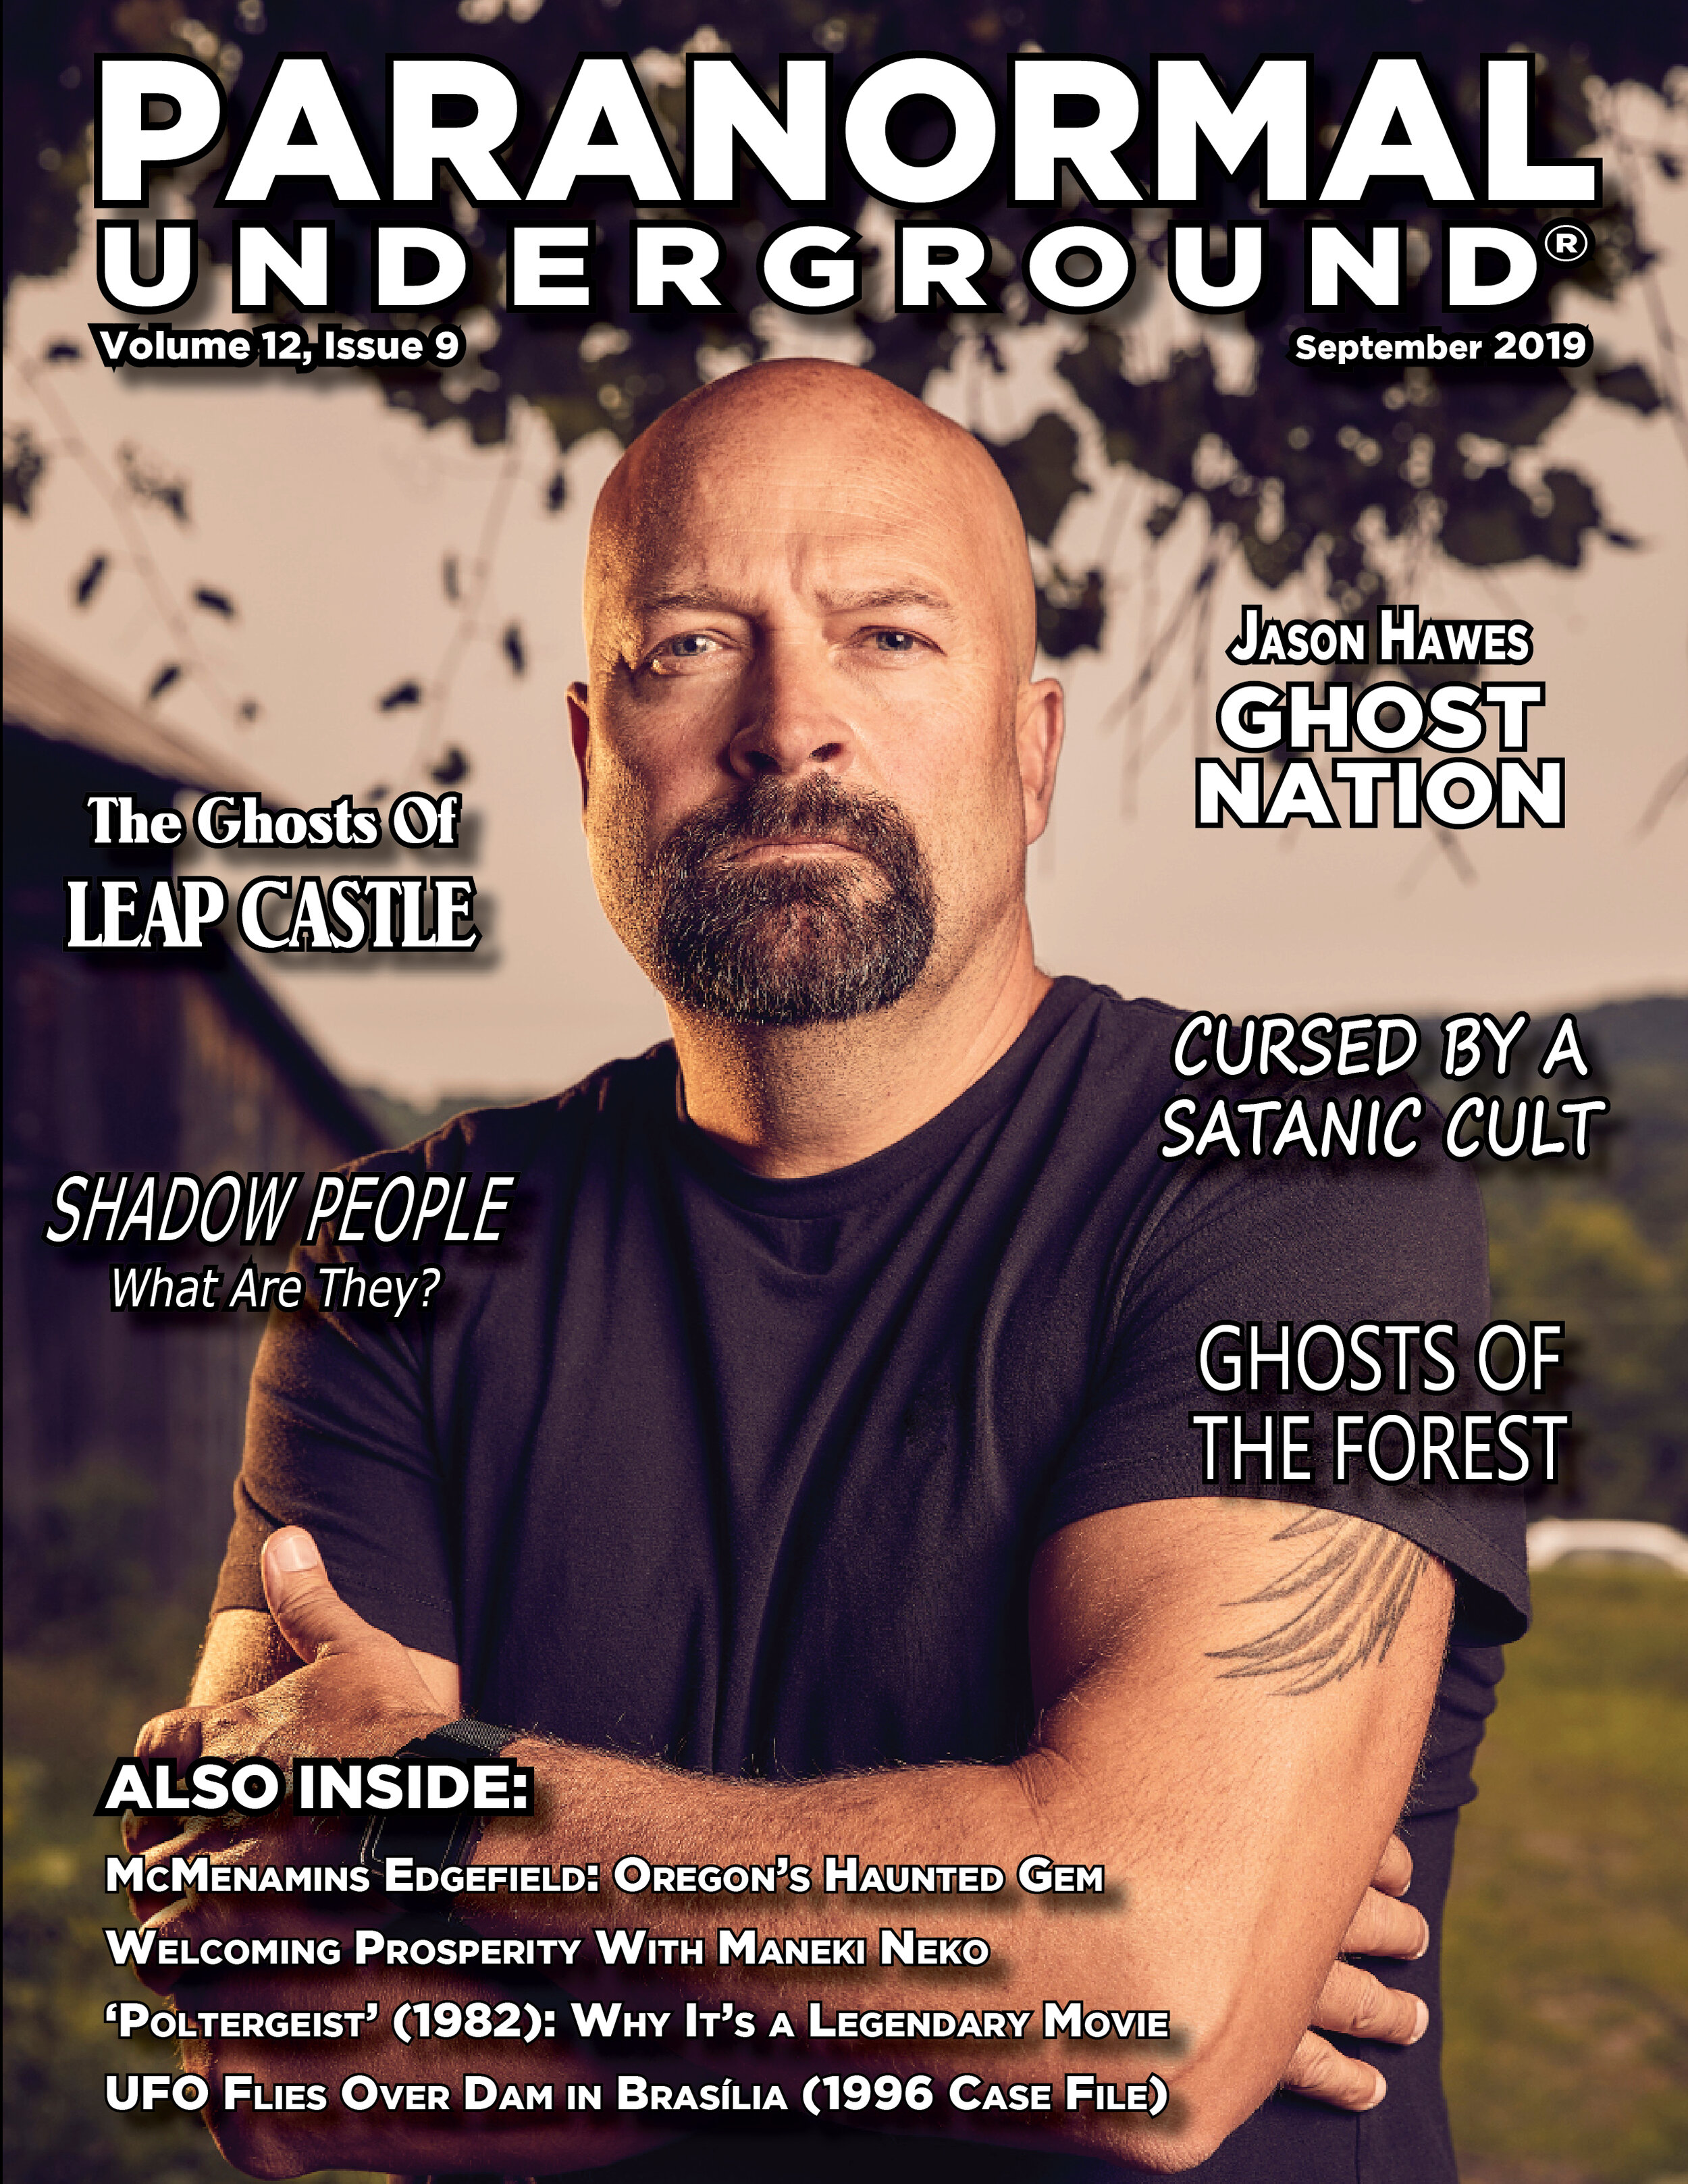 Paranormal Underground September 2019 Cover.jpg